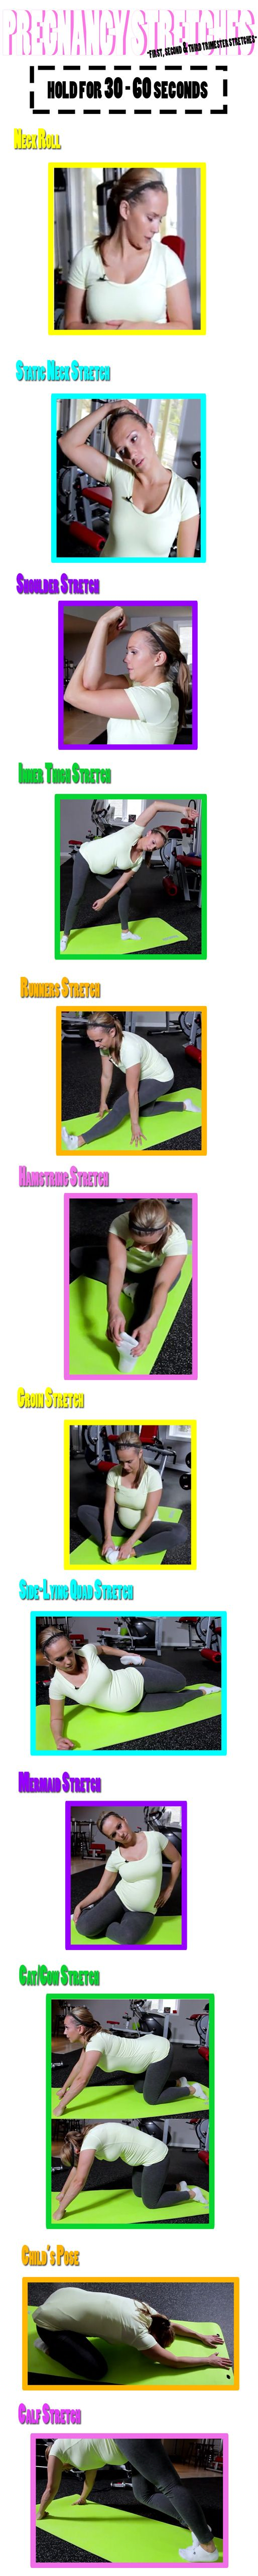 Stretching in very important during Pregnancy. Do these stretches to help relieve pain and for a better delivery:   http://www.flaviliciousfitness.com/blog/2013/04/24/pregnancy-stretches-first-second-third-trimester-stretches/  【REPIN 】